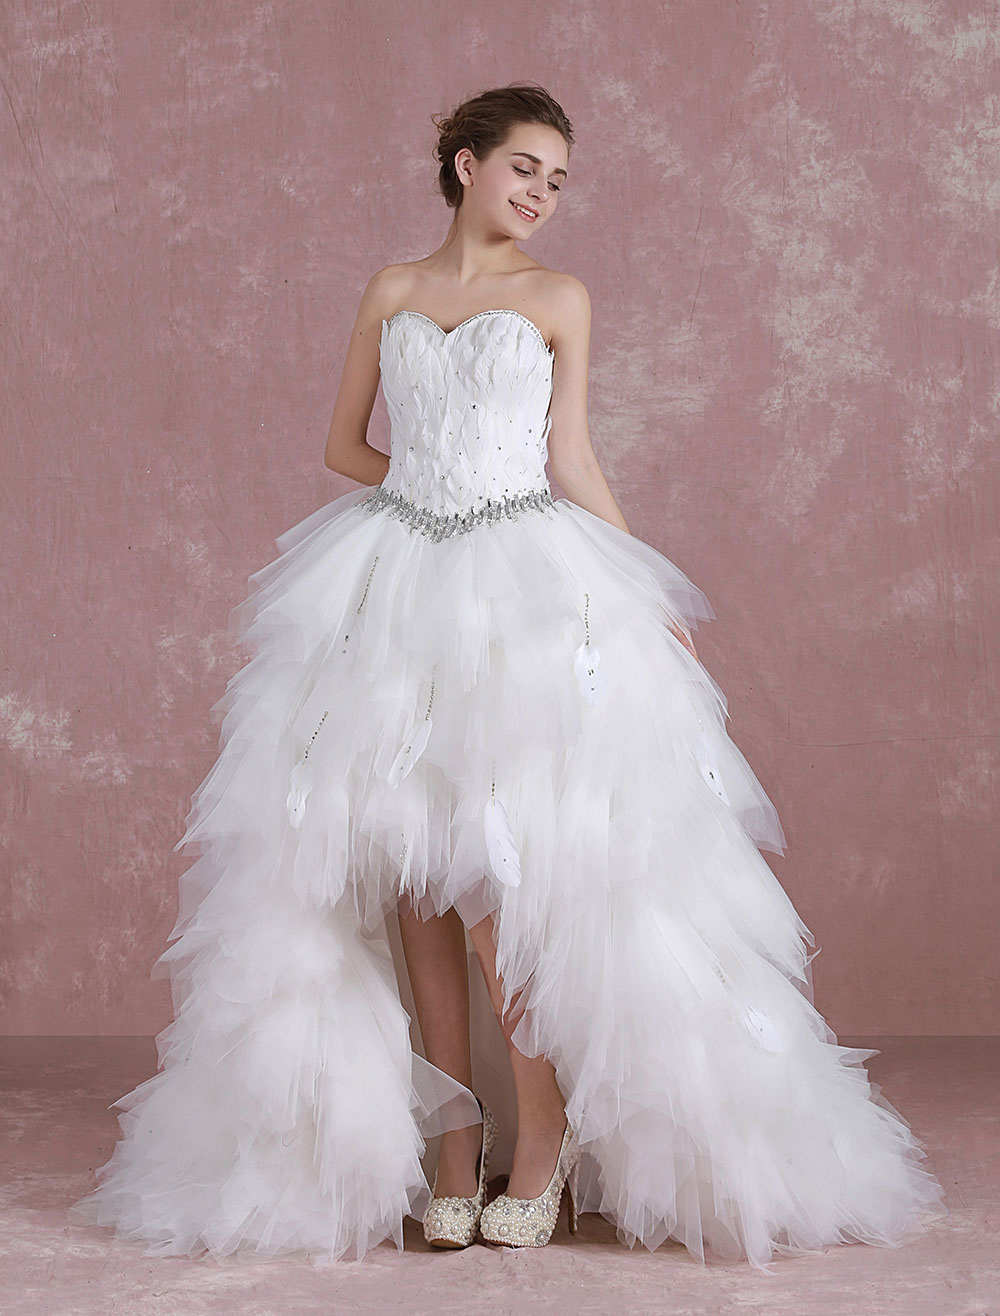 White ball gown sweetheart neck feather wedding dress for for White feather wedding dress